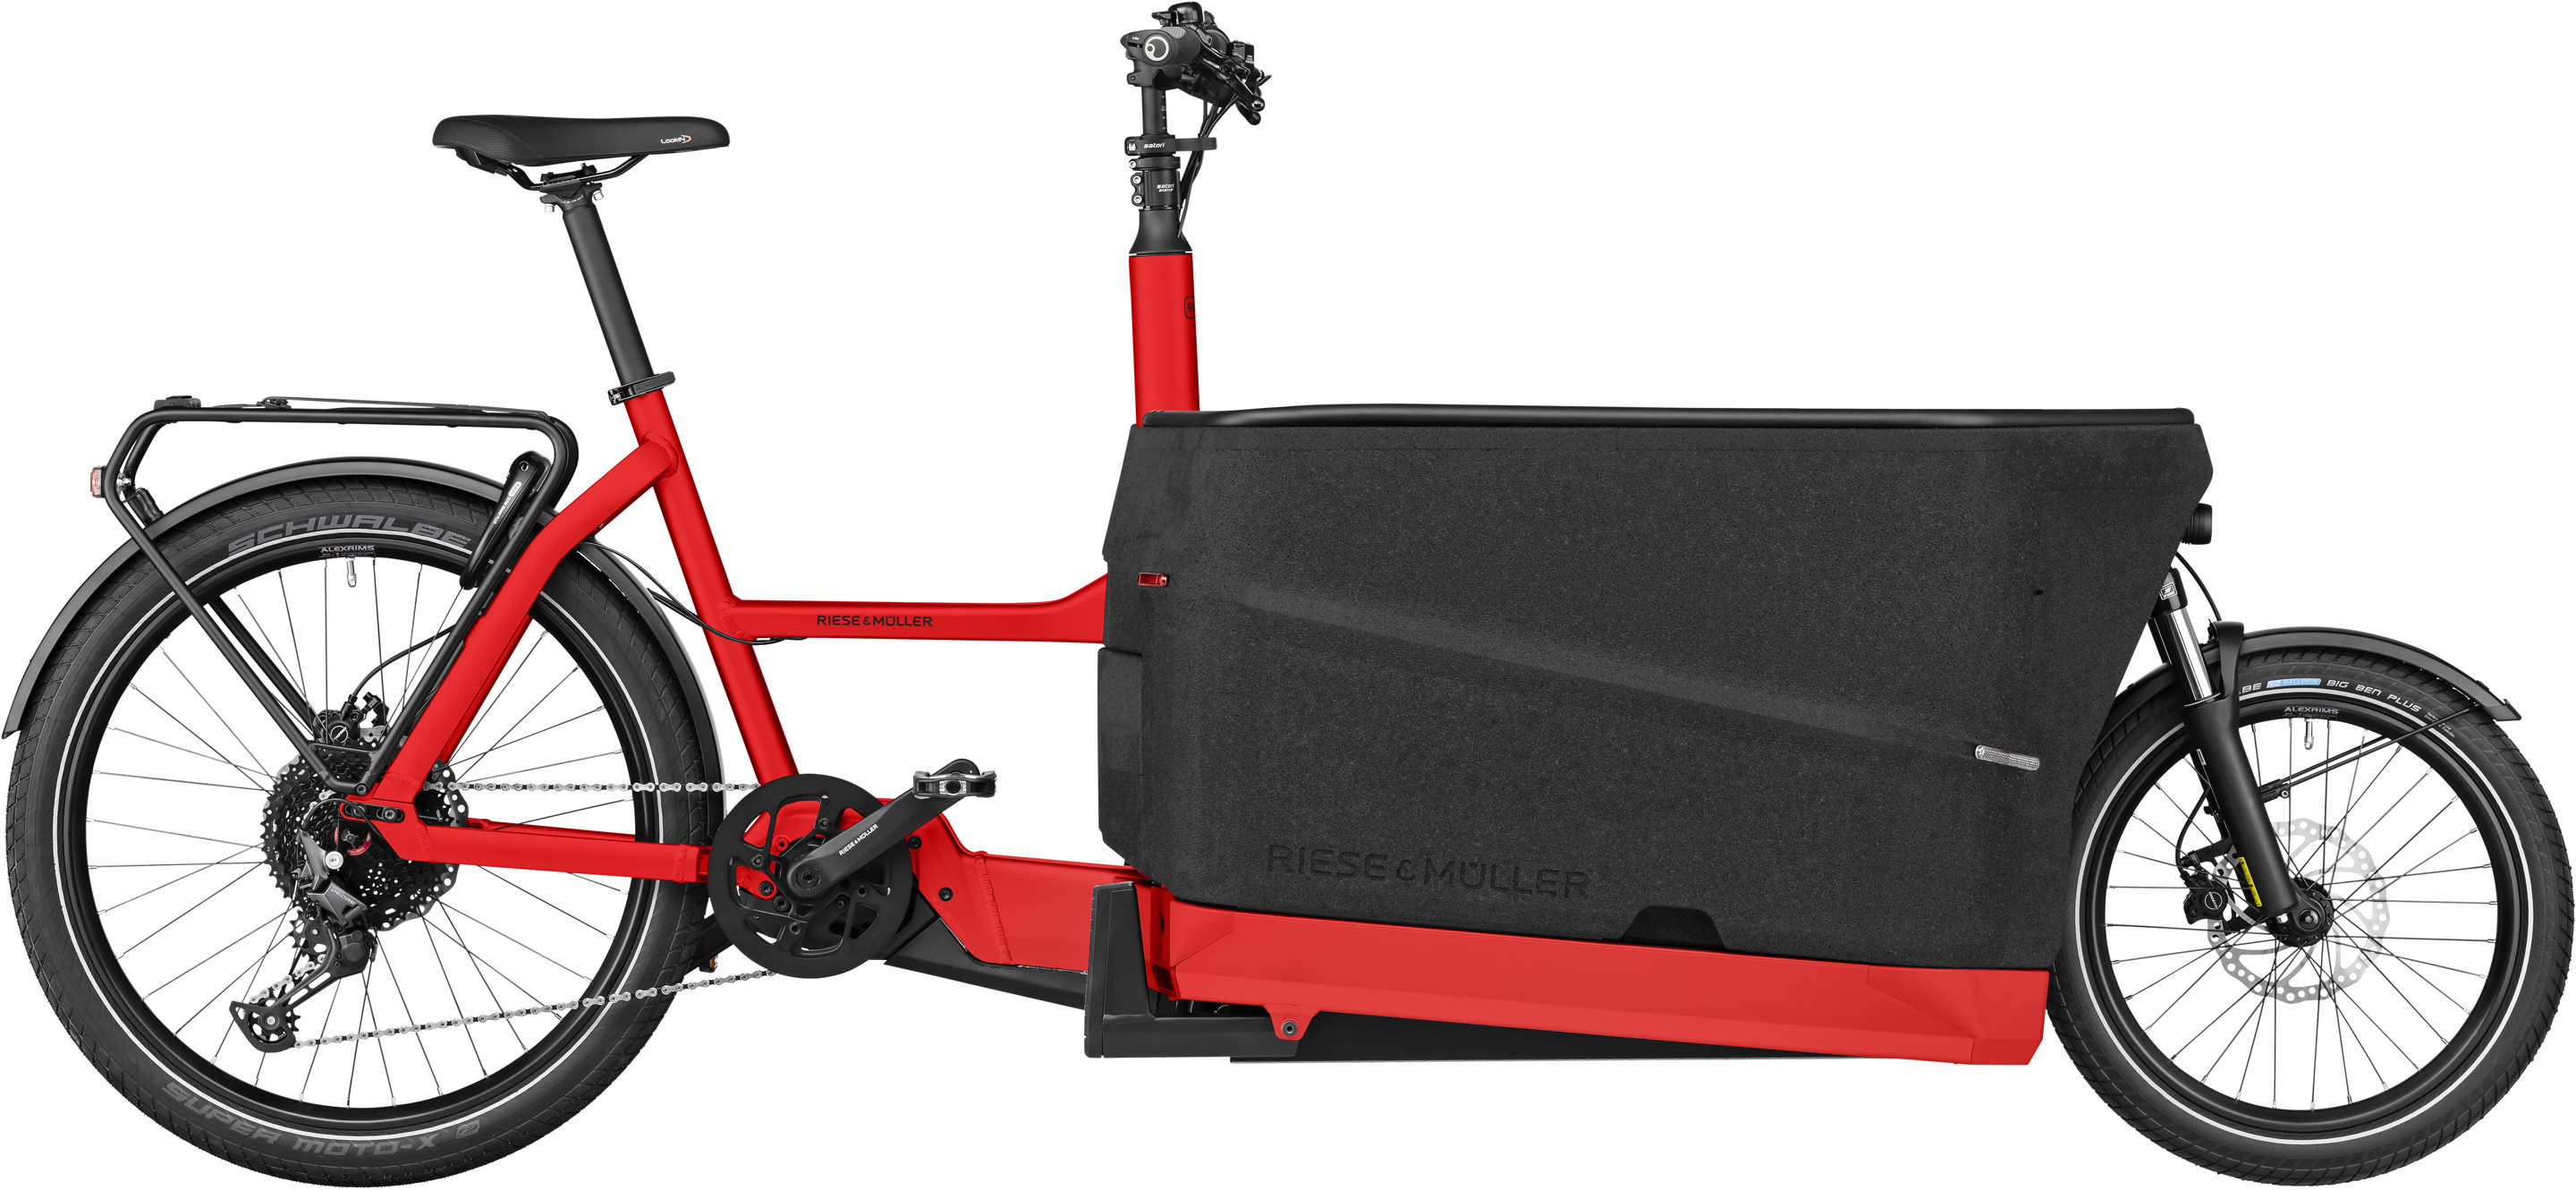 Packster 70 | Bouticycle